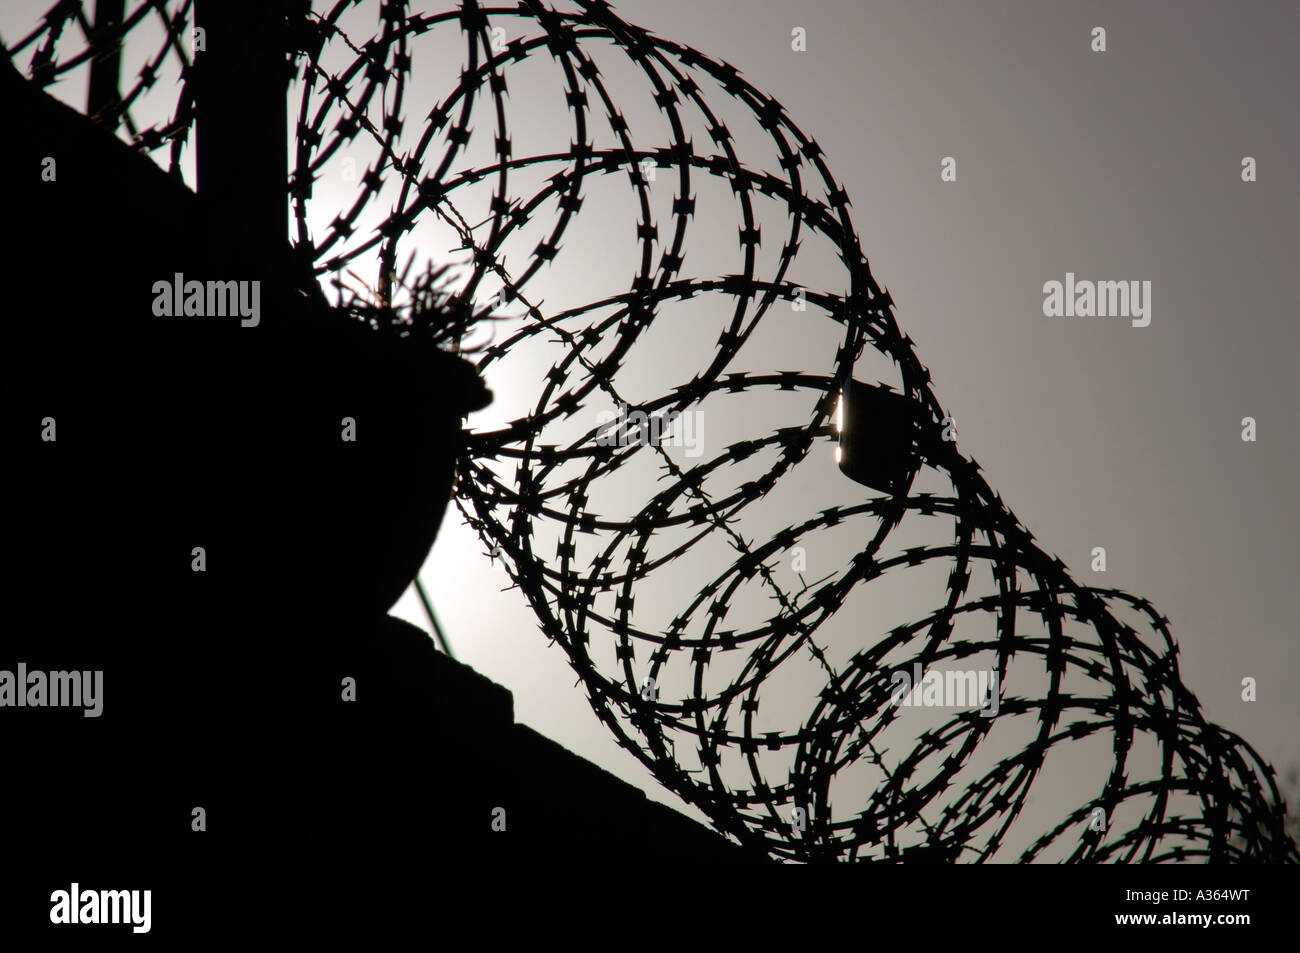 Silhouetted Image Of Razor Barbed Wire,Used As A Security Deterrent. - Stock Image